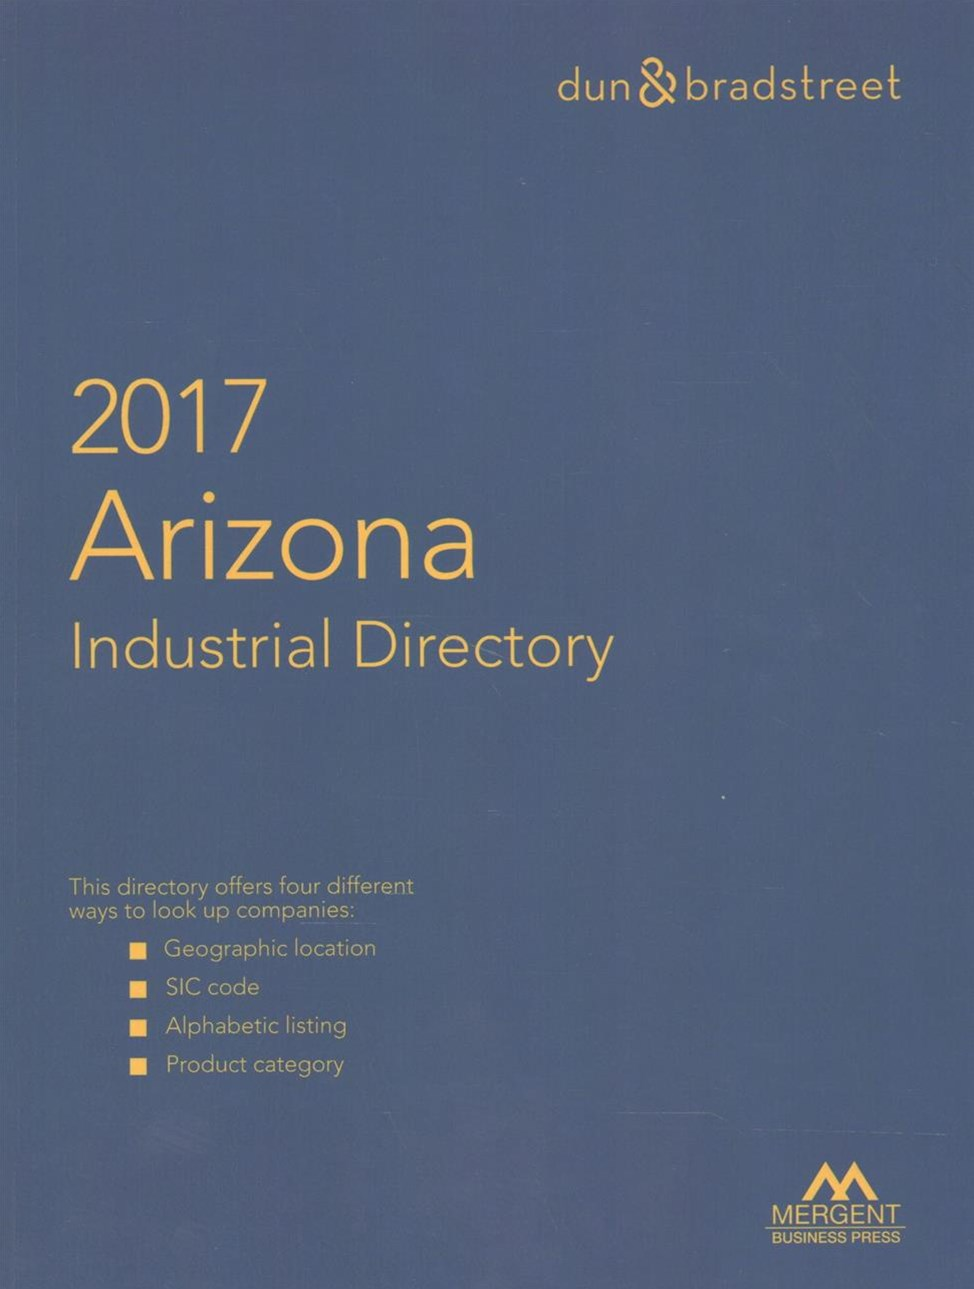 Arizona Industrial Directory 2017